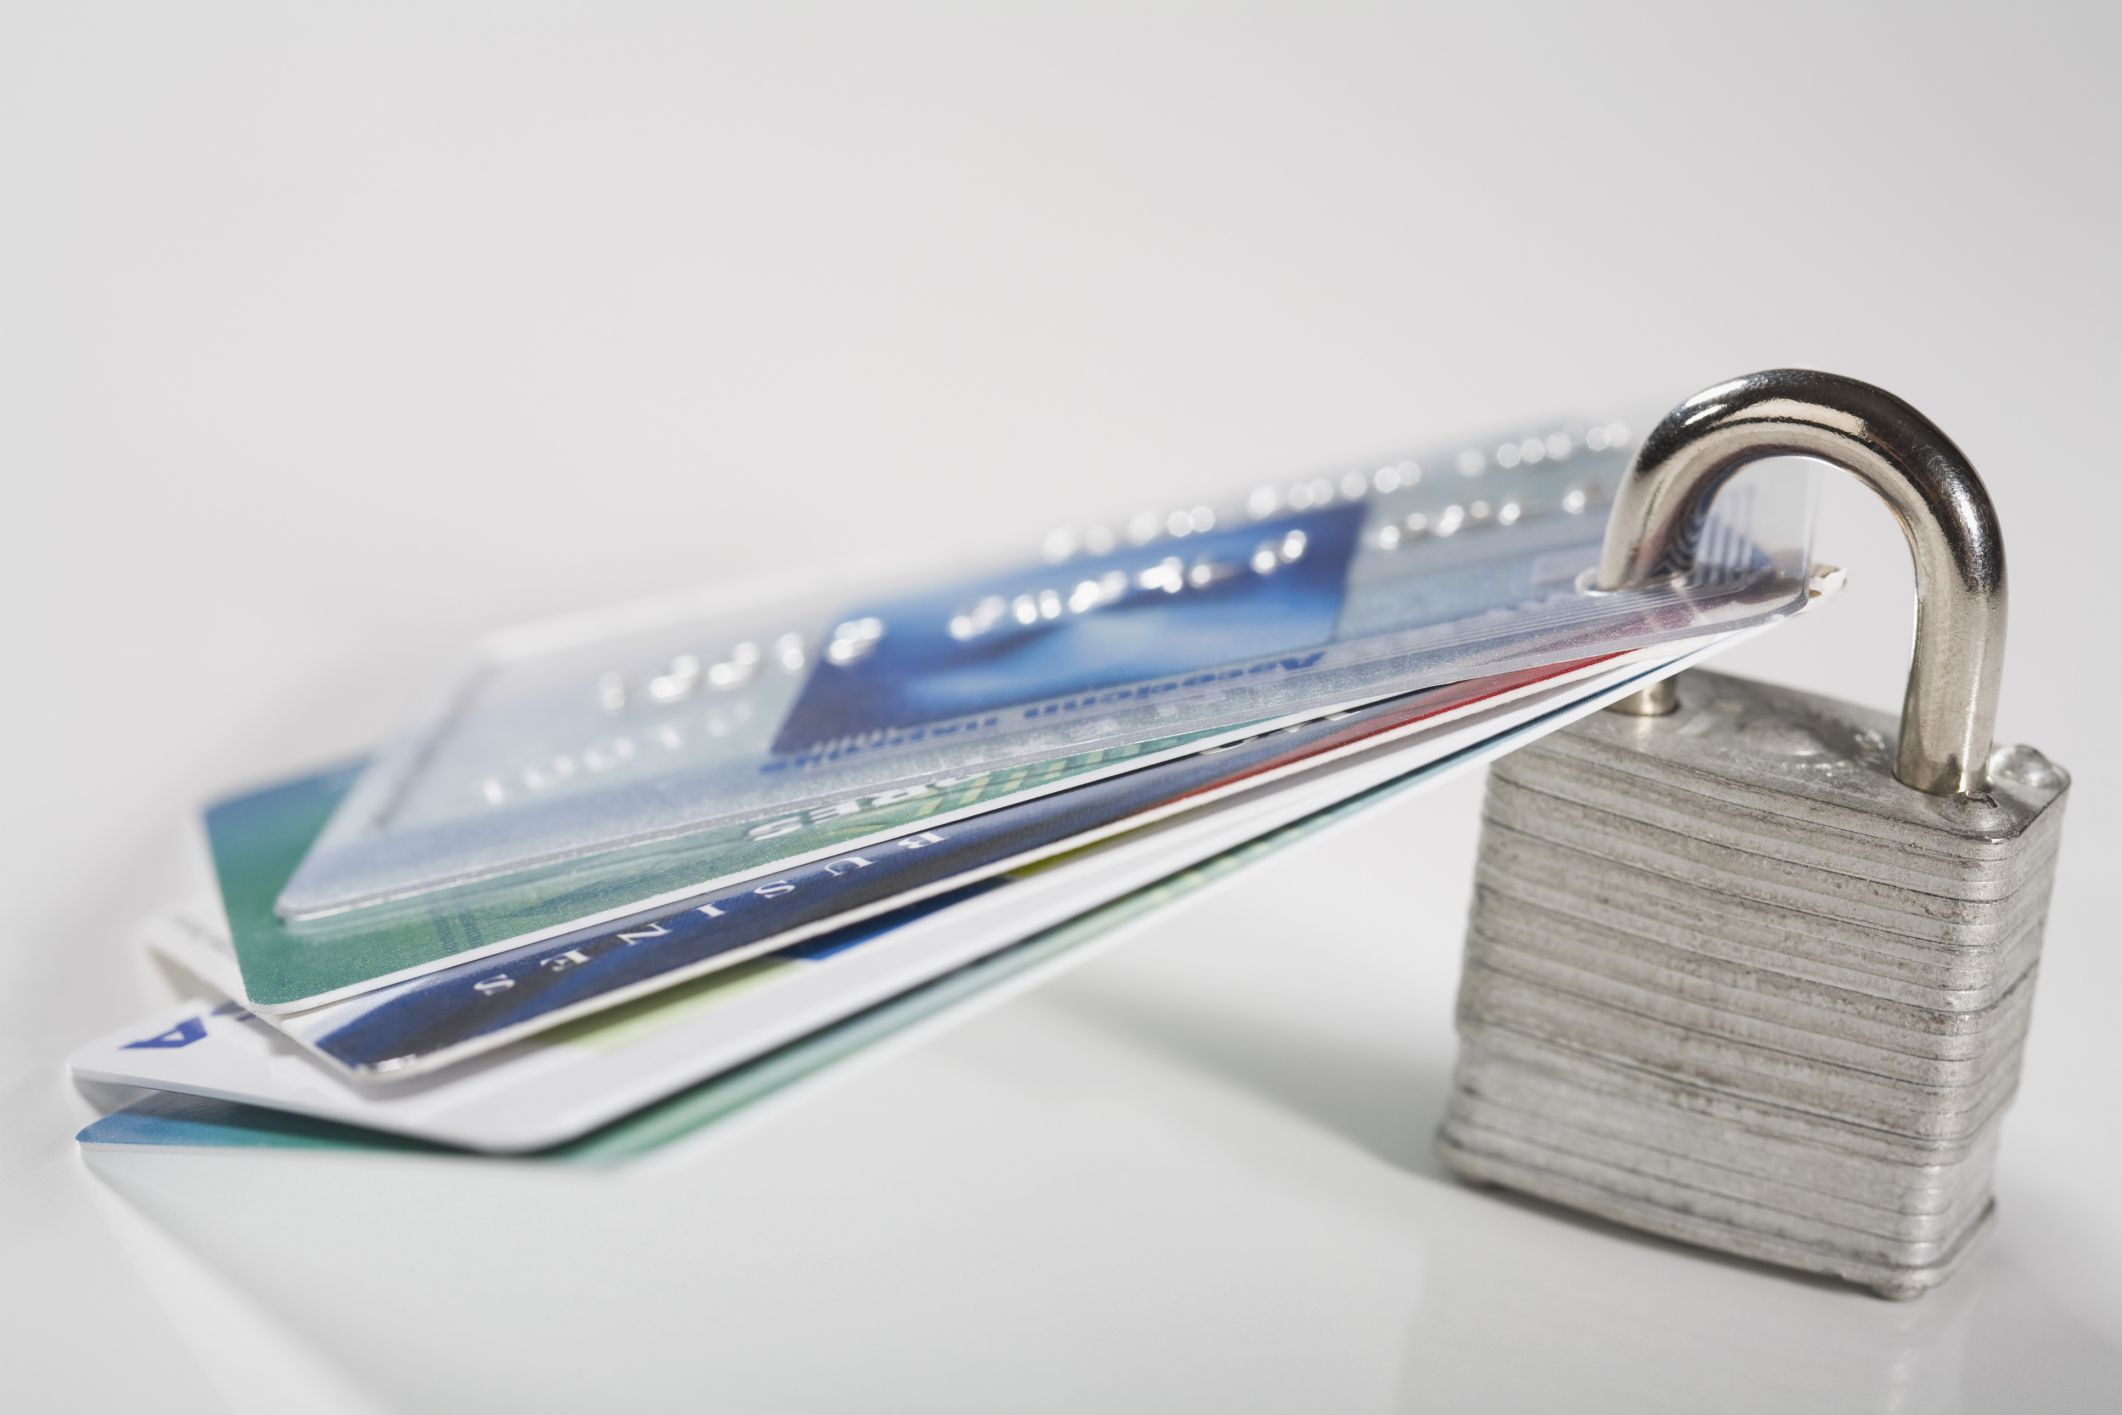 6 Reasons for a Credit Card Account Cancellation